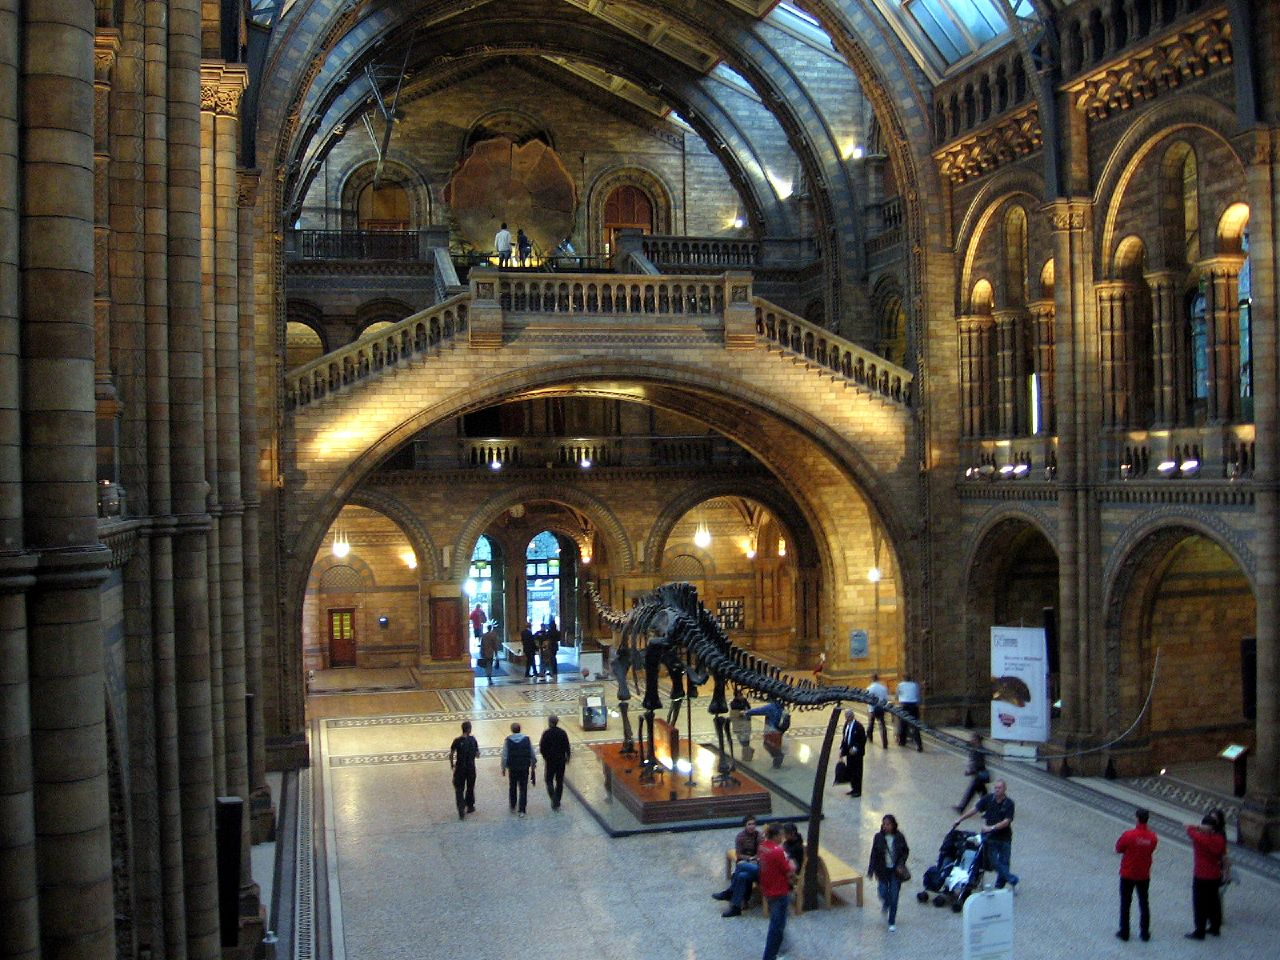 Natural History Museum OliverN5 bei flickr